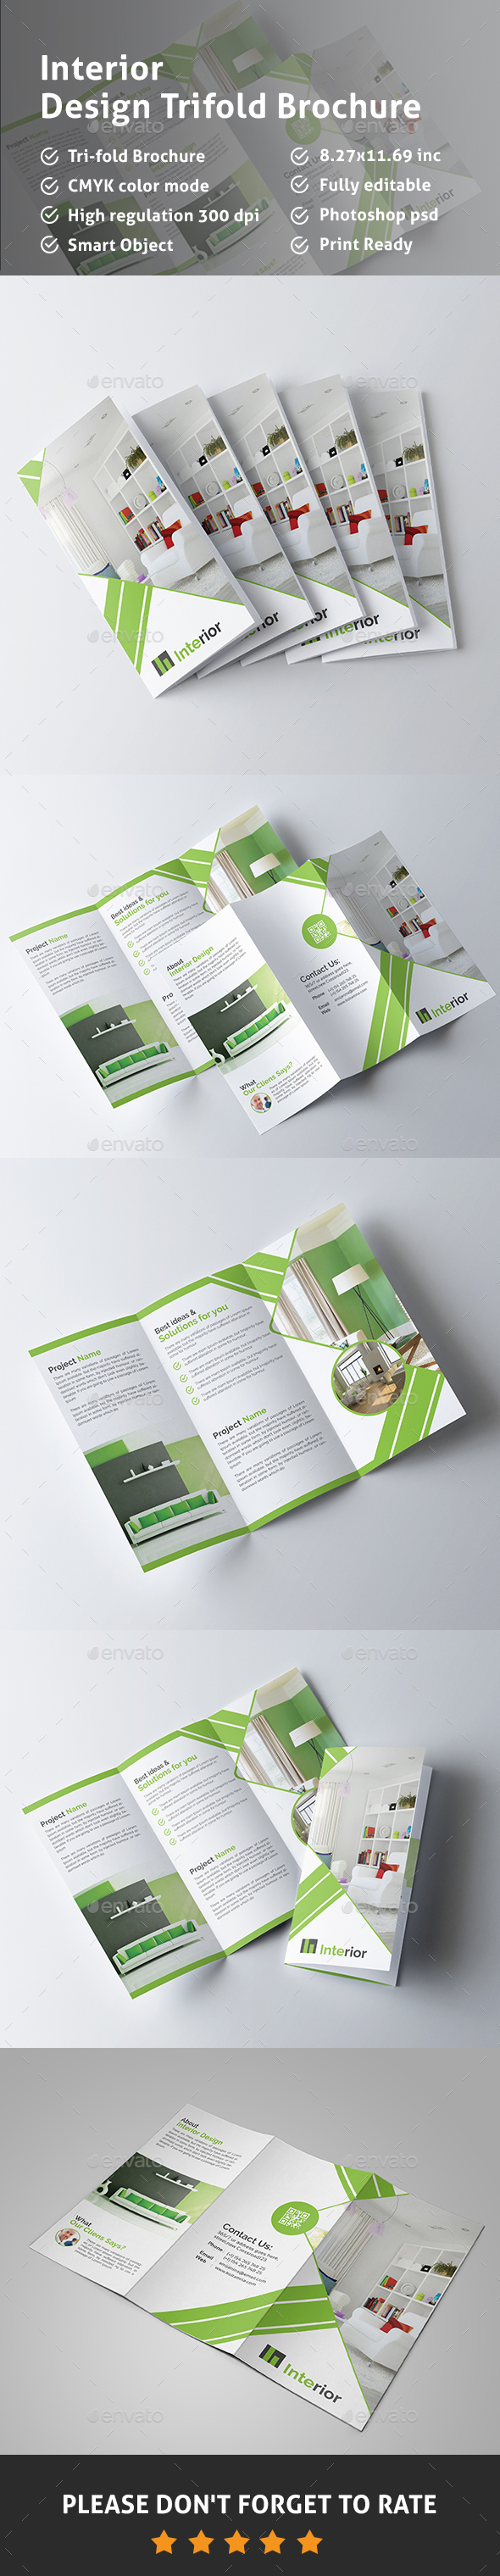 Interior Design Trifold Brochure - Corporate Brochures